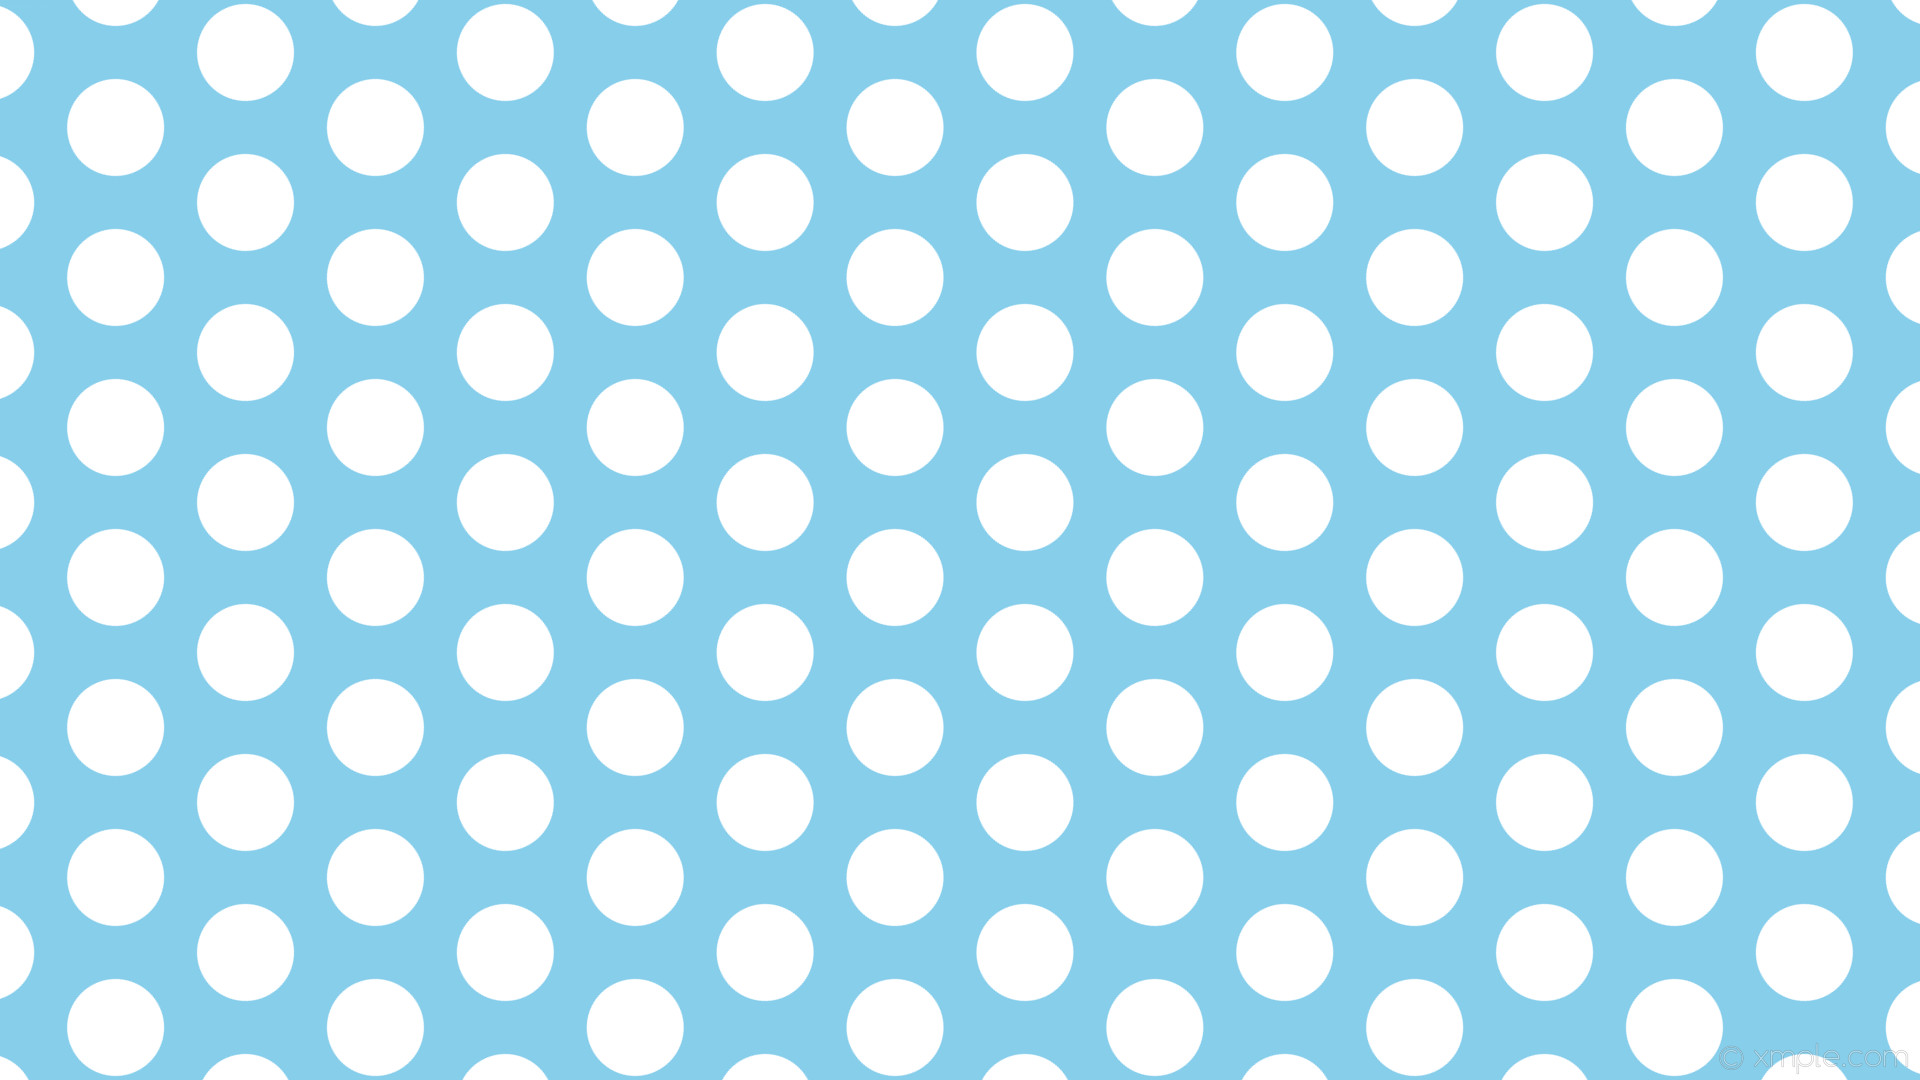 wallpaper dots hexagon white blue polka sky blue #87ceeb #ffffff diagonal  30° 97px